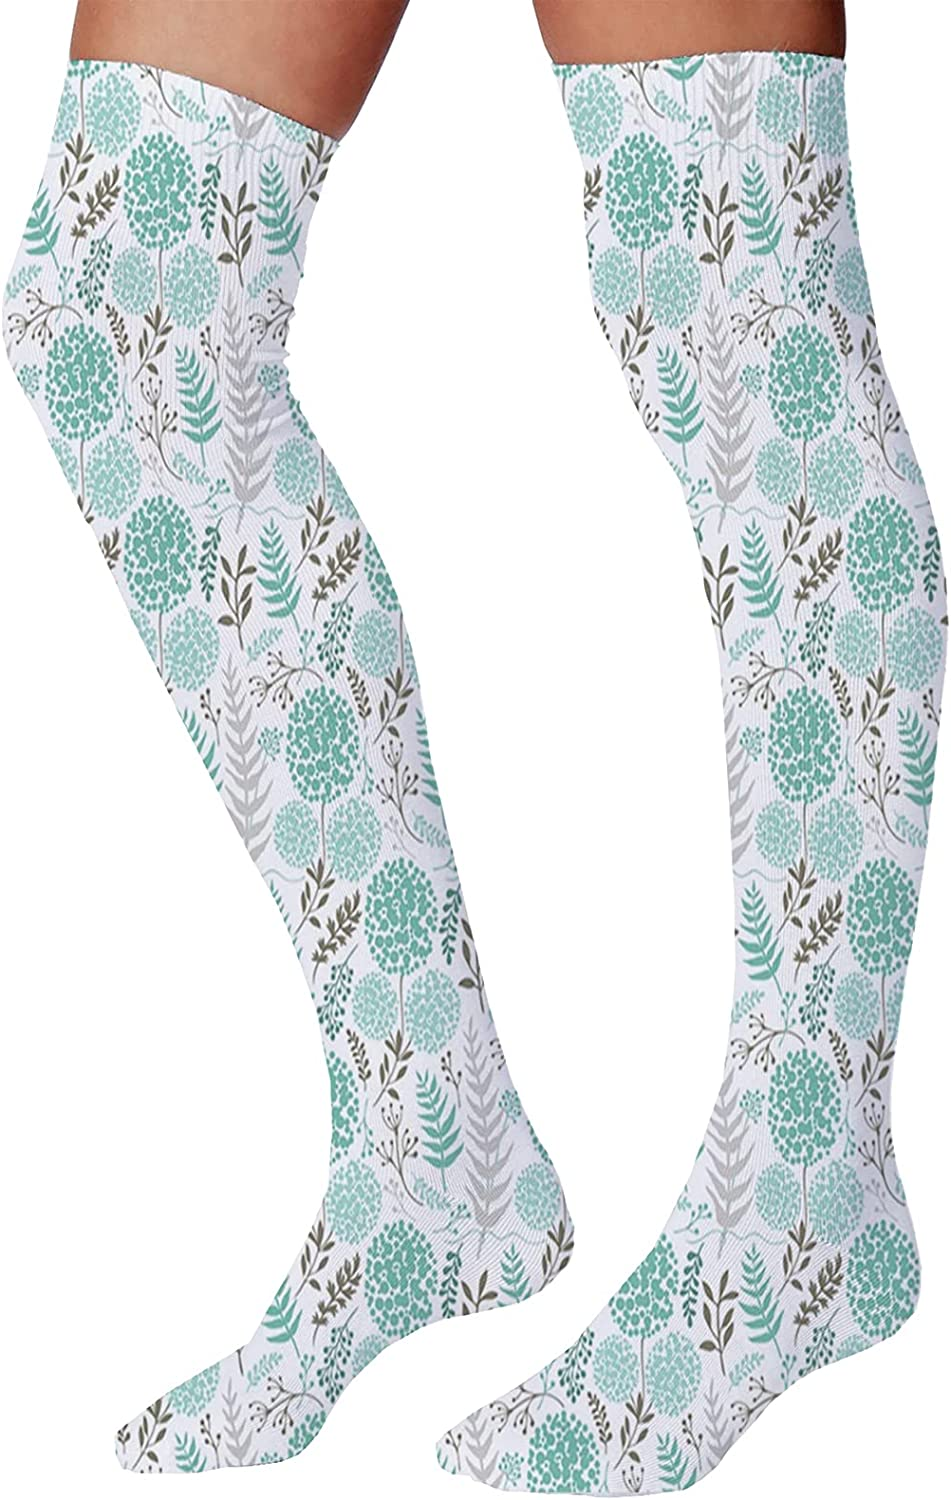 Men's and Women's Fun Socks,Abstract Design Different Seashells Doodle Stylized Pastel Tone Coastal Icons Pattern